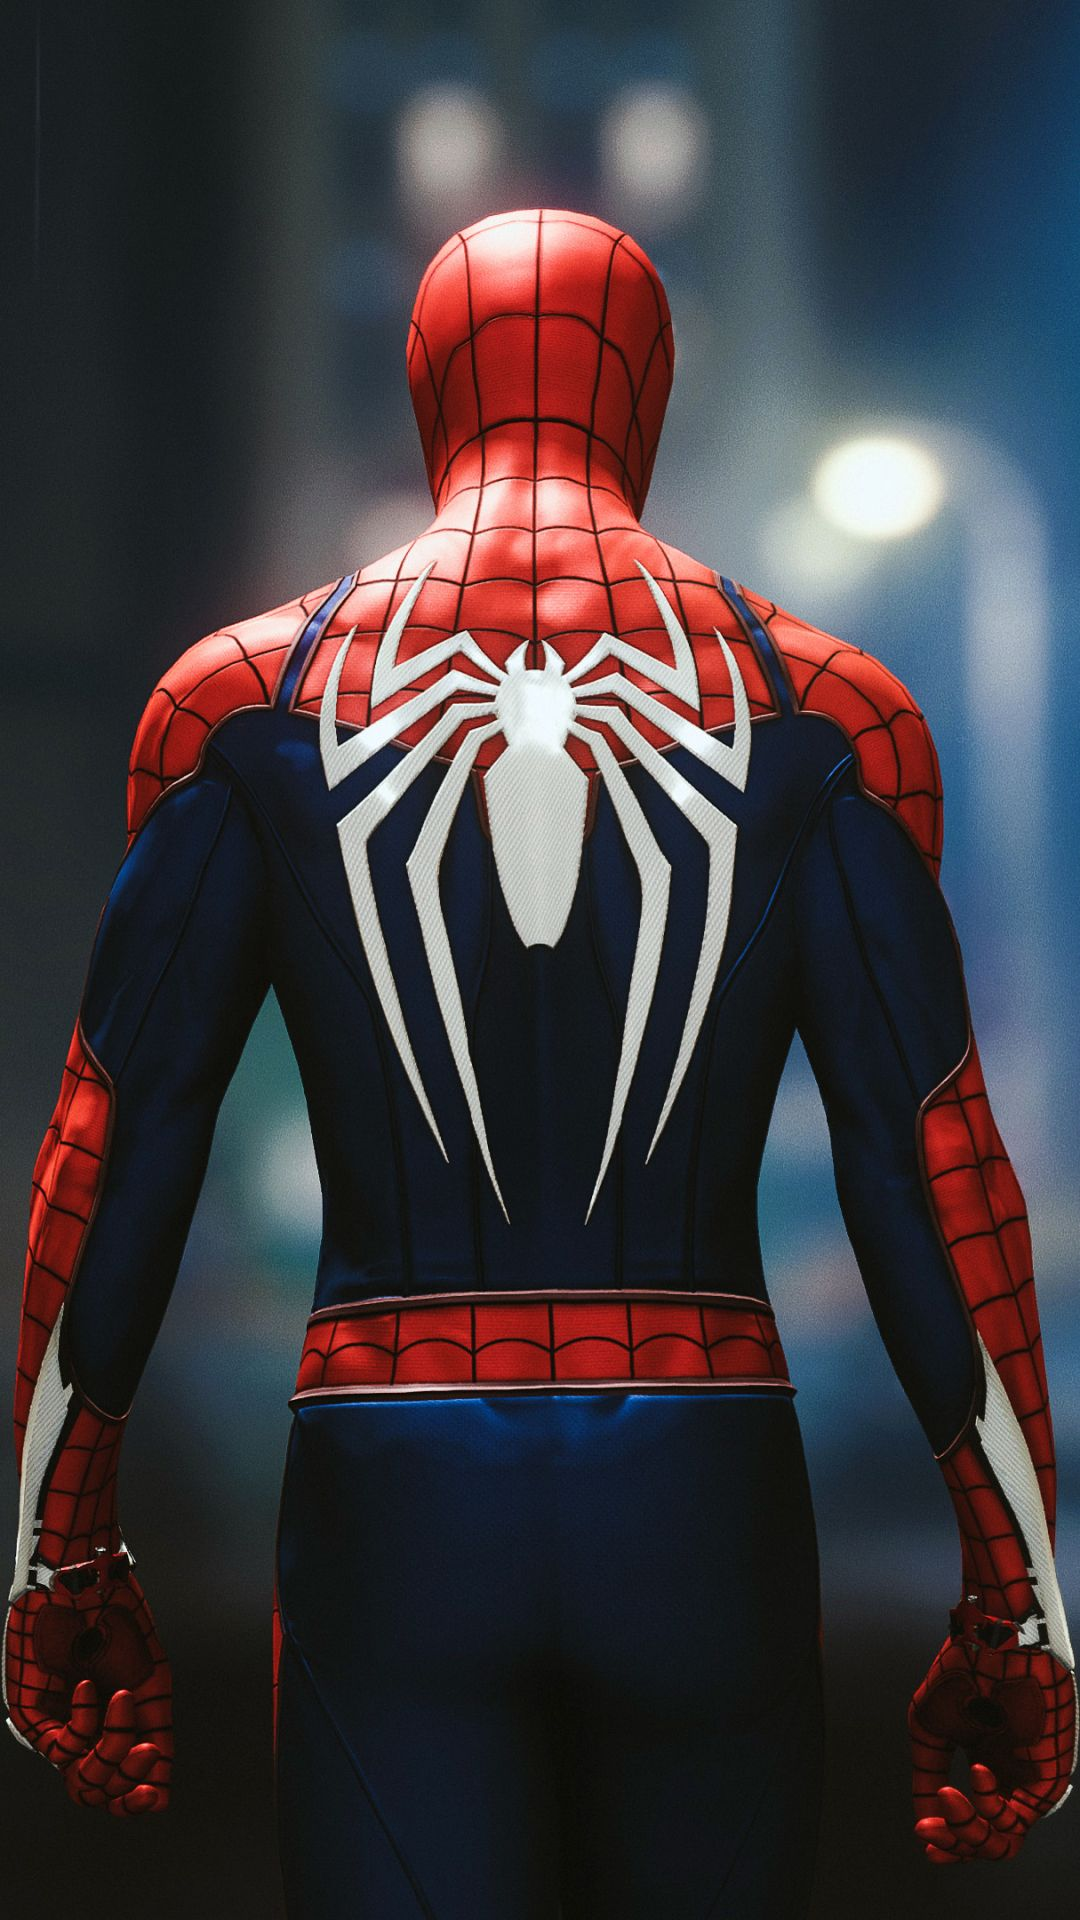 Download This Wallpaper Video Gamespider Man Ps4 1080x1920 For